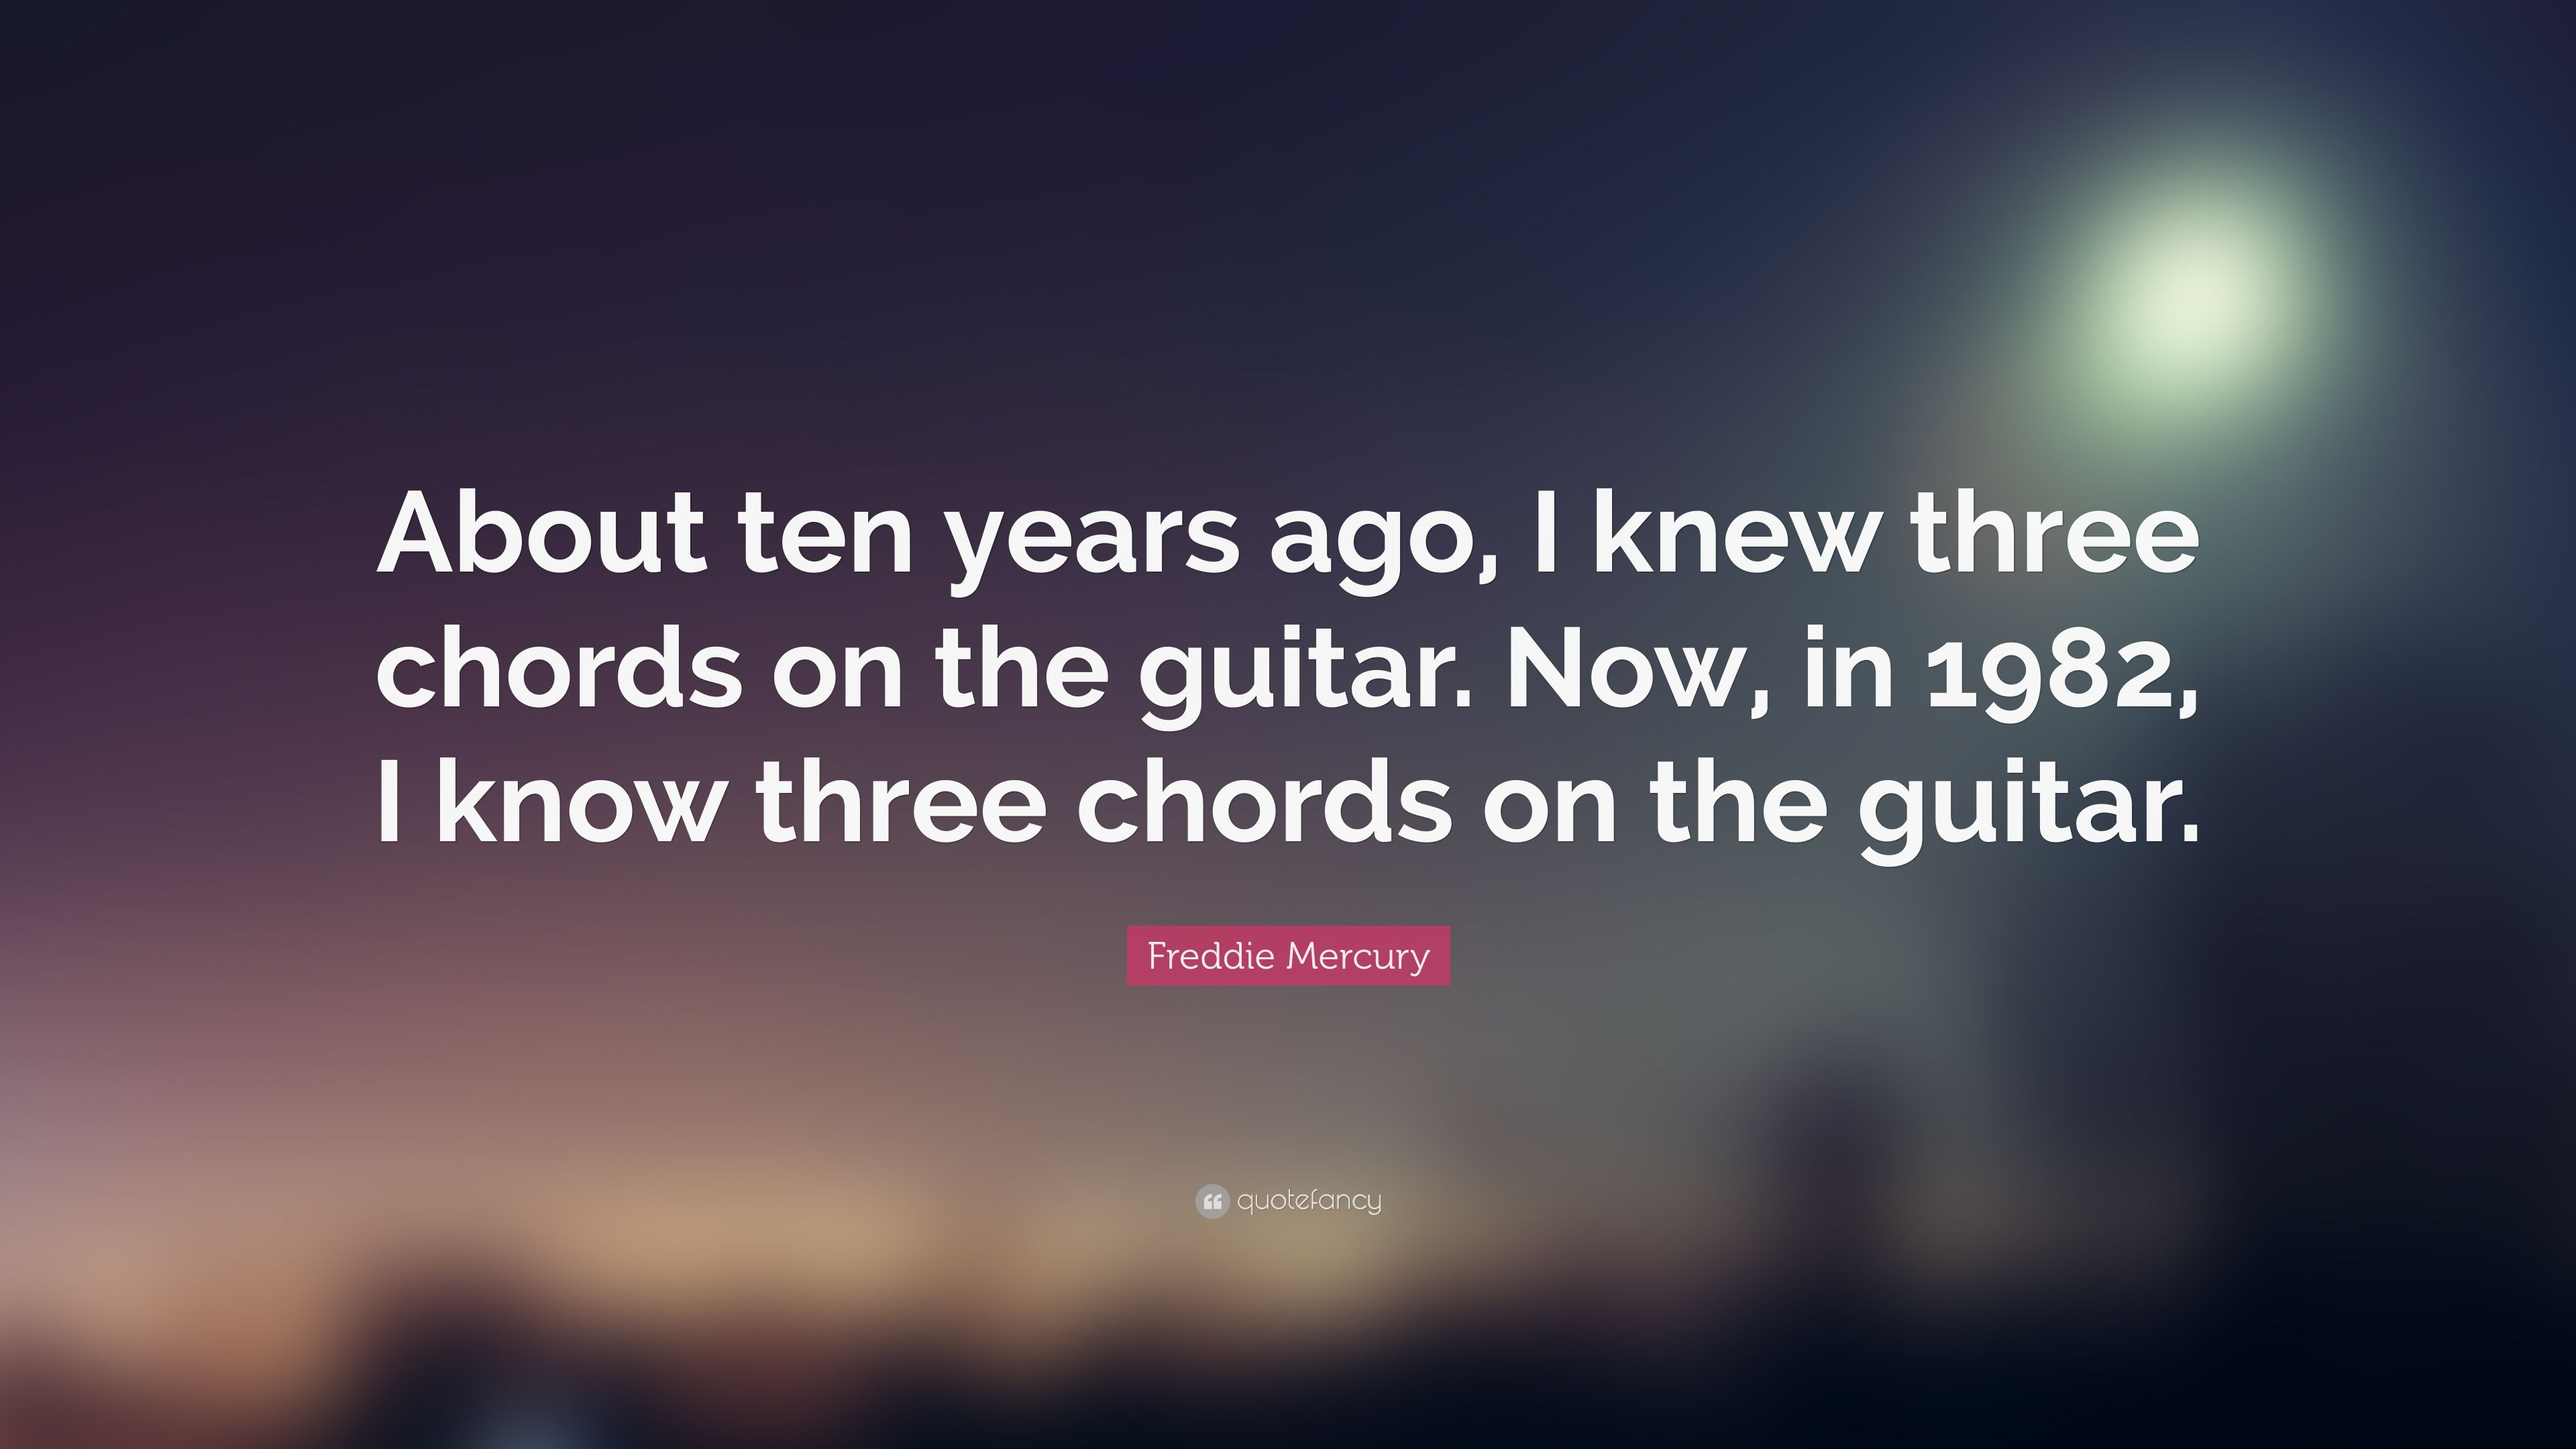 Freddie Mercury Quote About Ten Years Ago I Knew Three Chords On